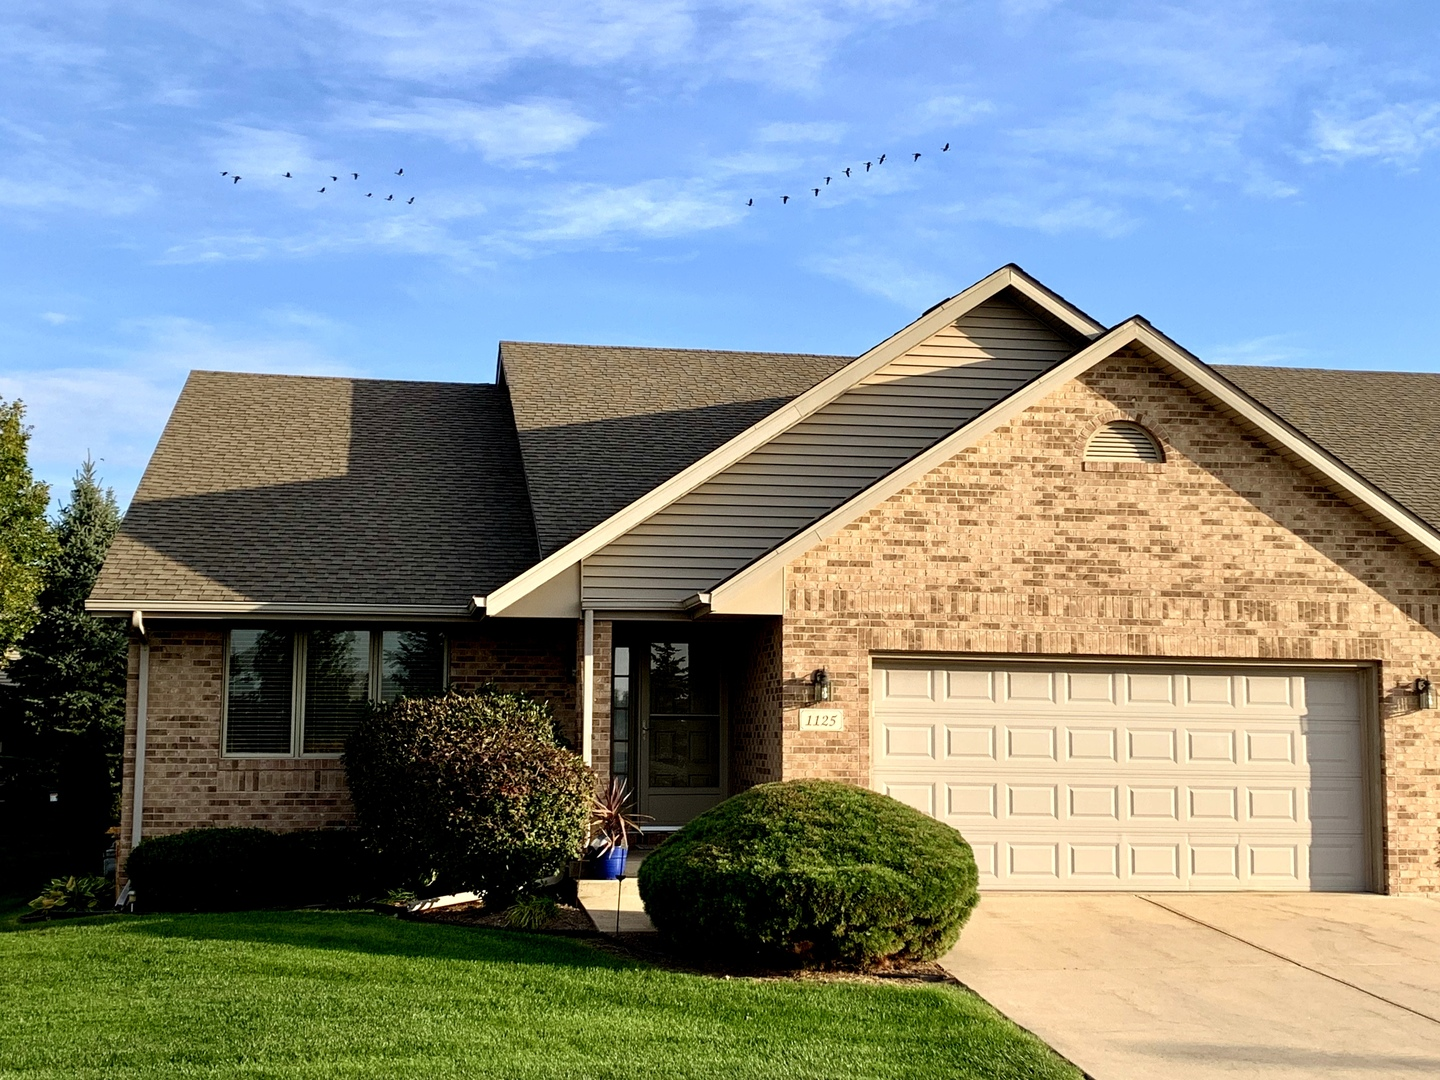 Photo for 1125 Daniel Court, Unit Number 1125, Sycamore, IL 60178 (MLS # 10544321)